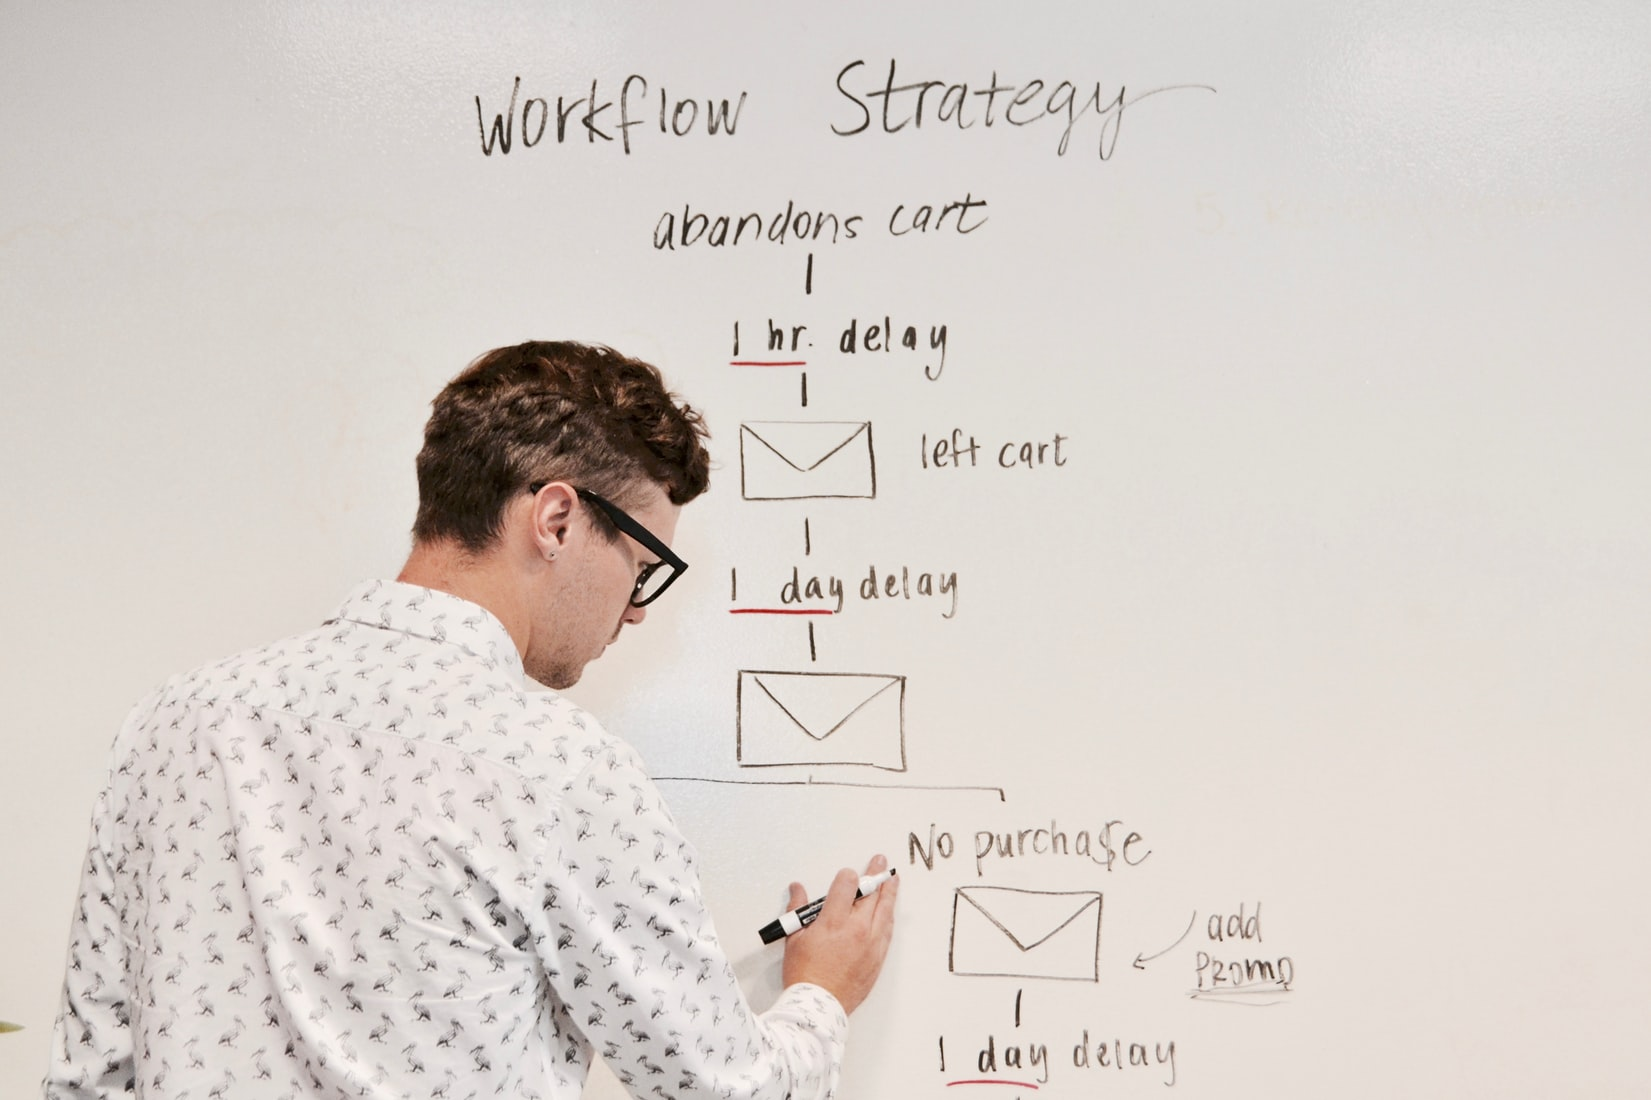 Workflow Management Overview, Benefits, Use Cases, and The Future